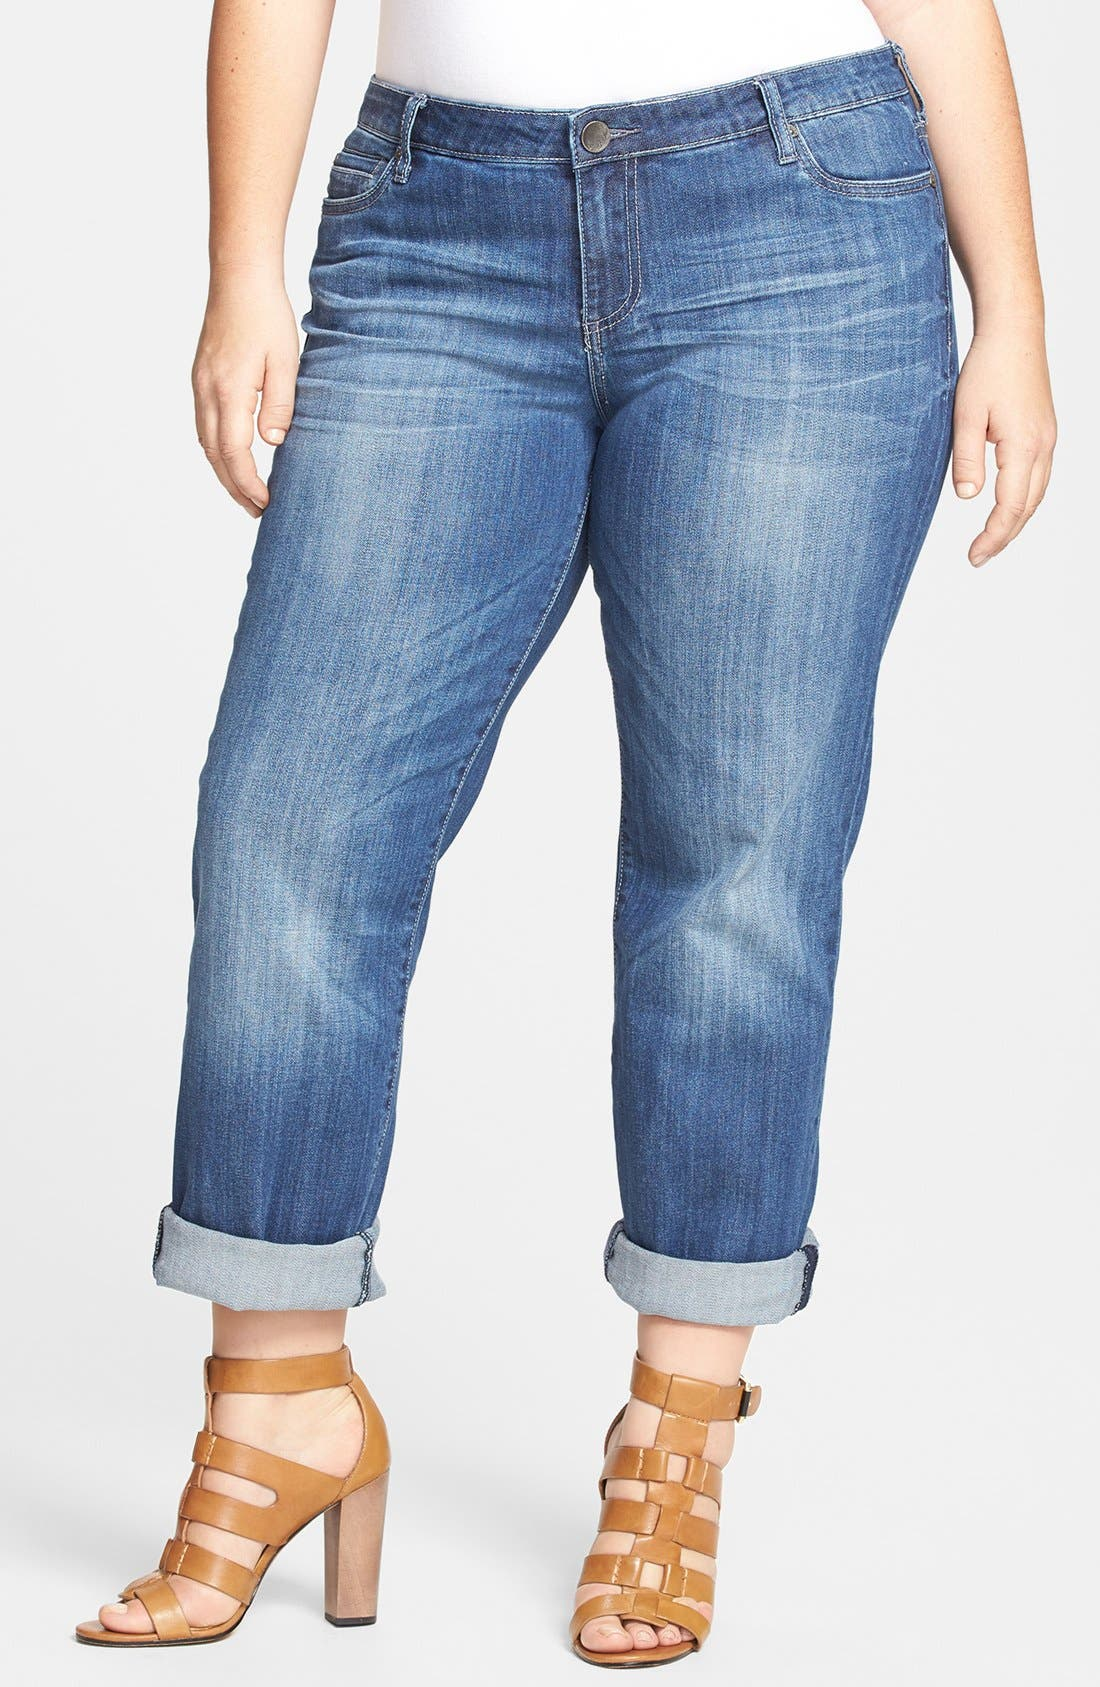 Alternate Image 1 Selected - KUT from the Kloth 'Catherine' Boyfriend Jeans (Plus Size)